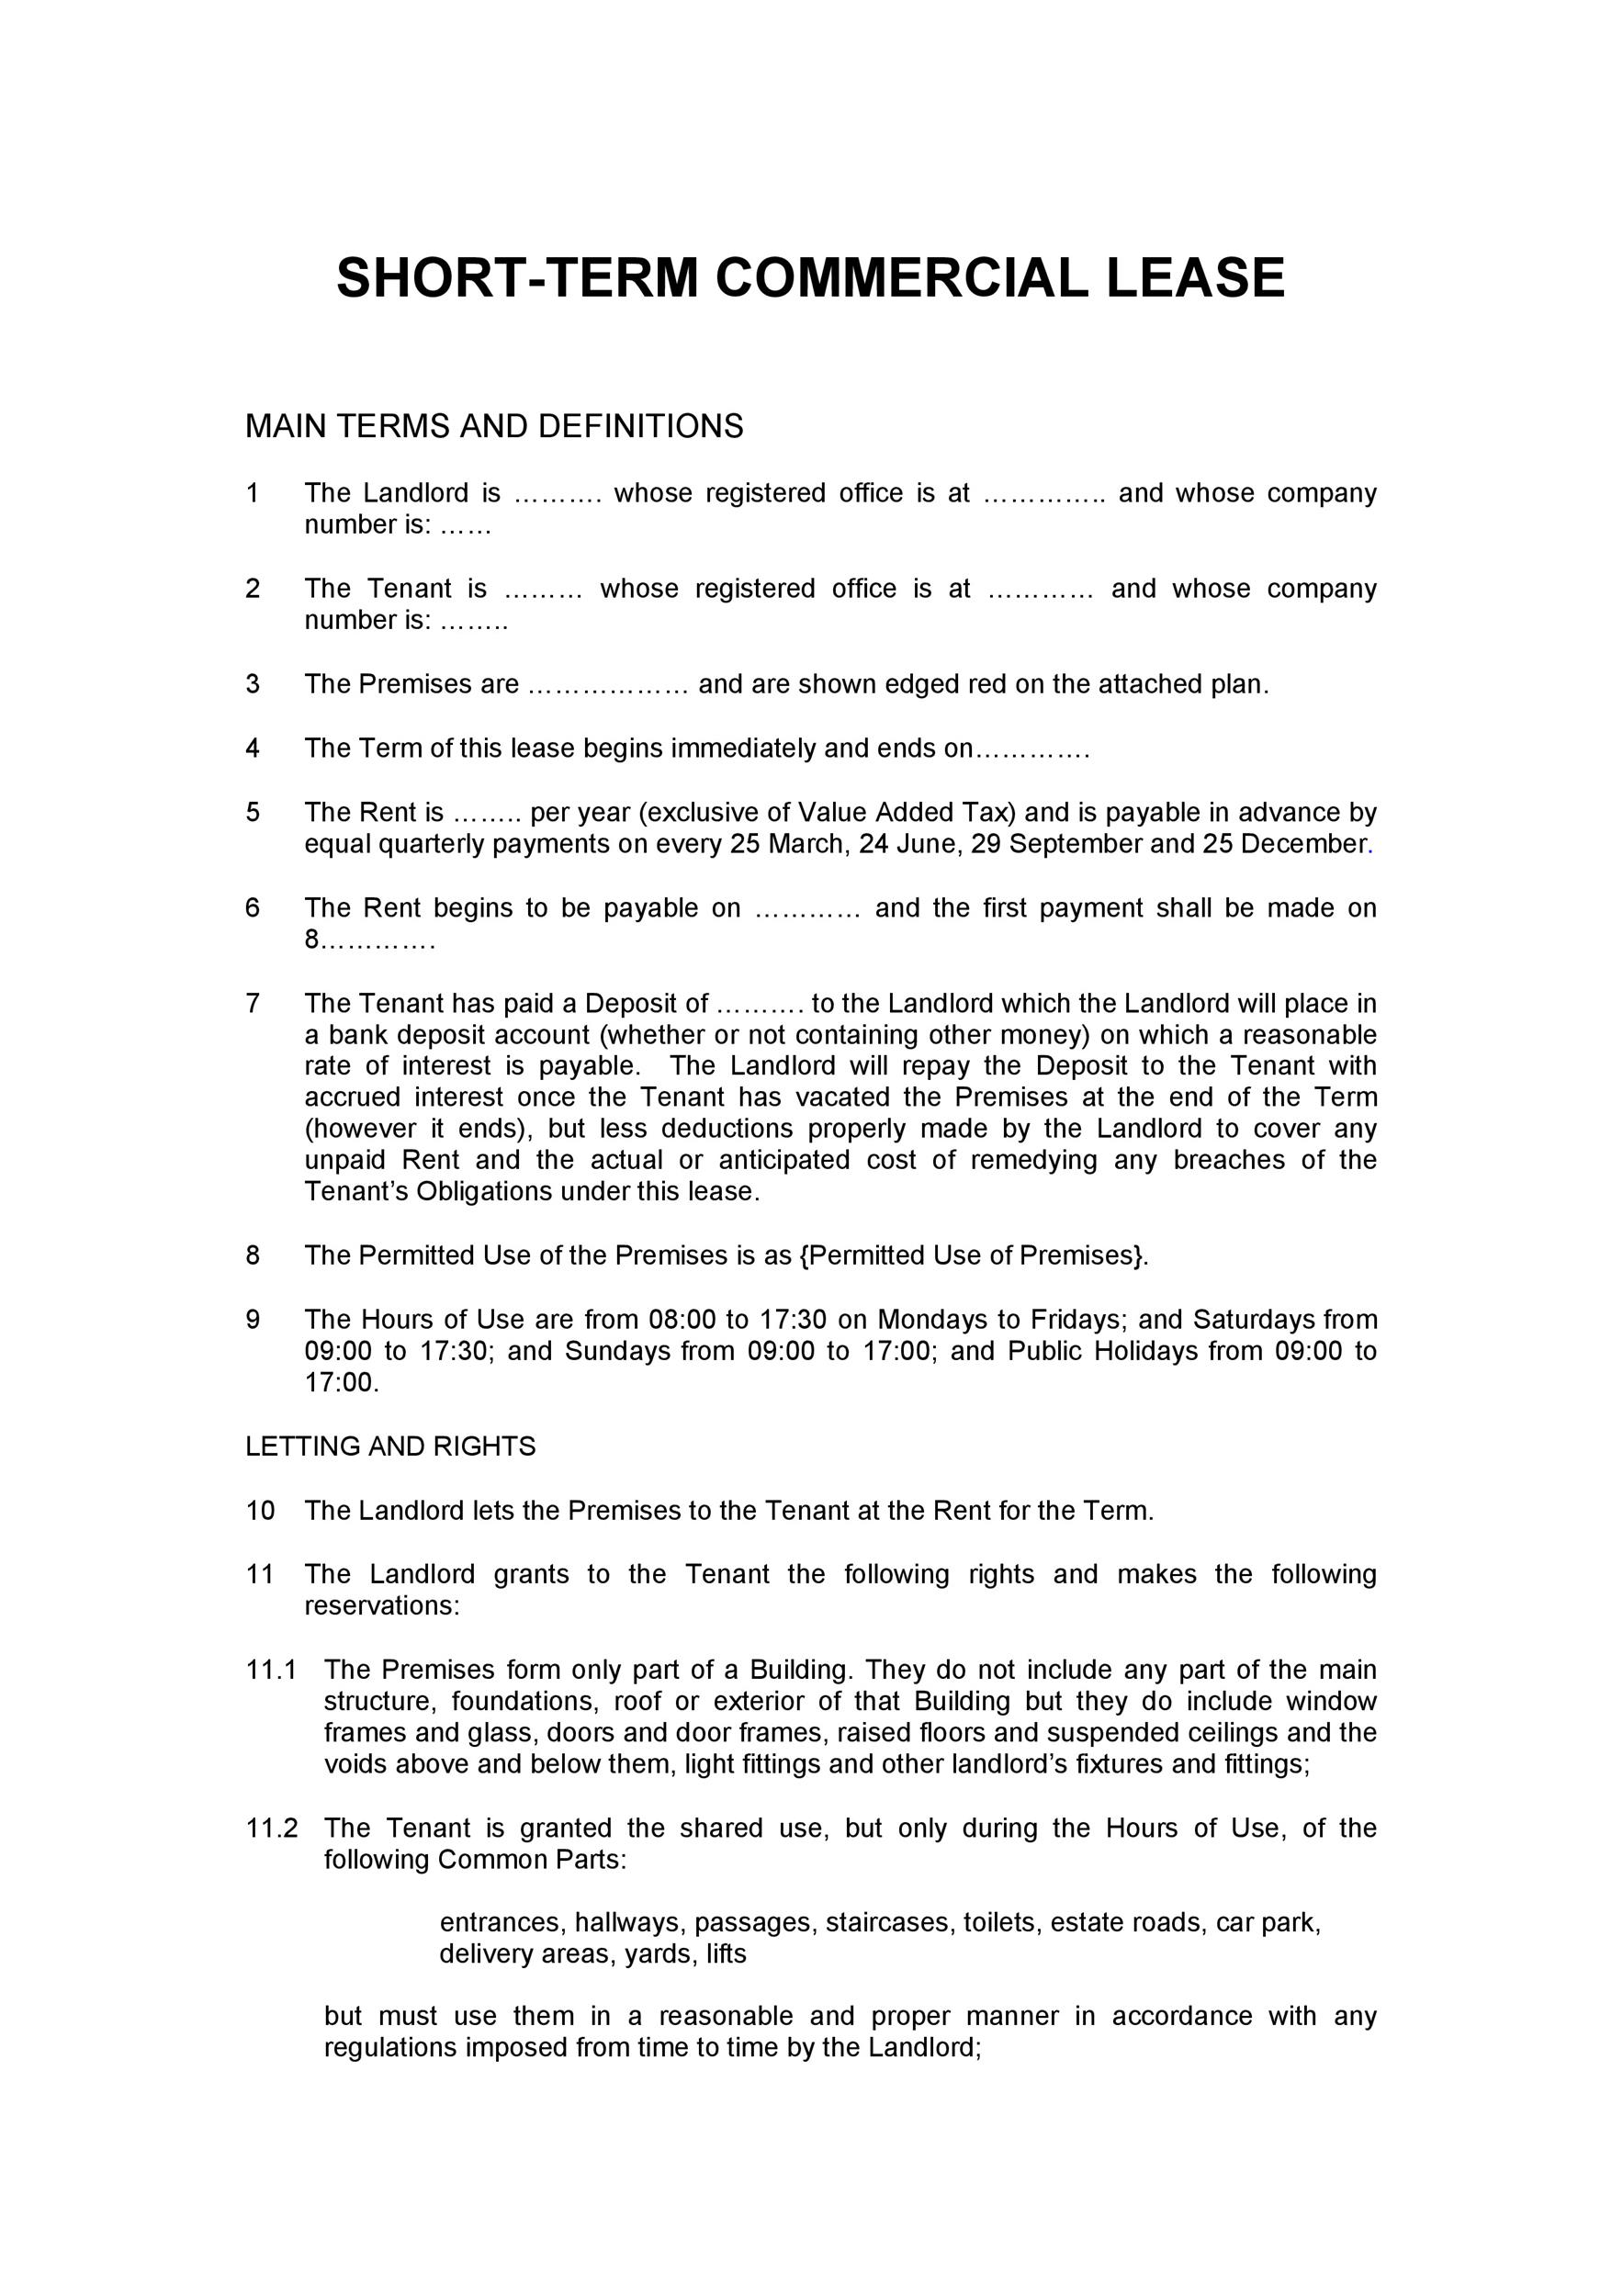 commercial lease agreement template 13. Resume Example. Resume CV Cover Letter